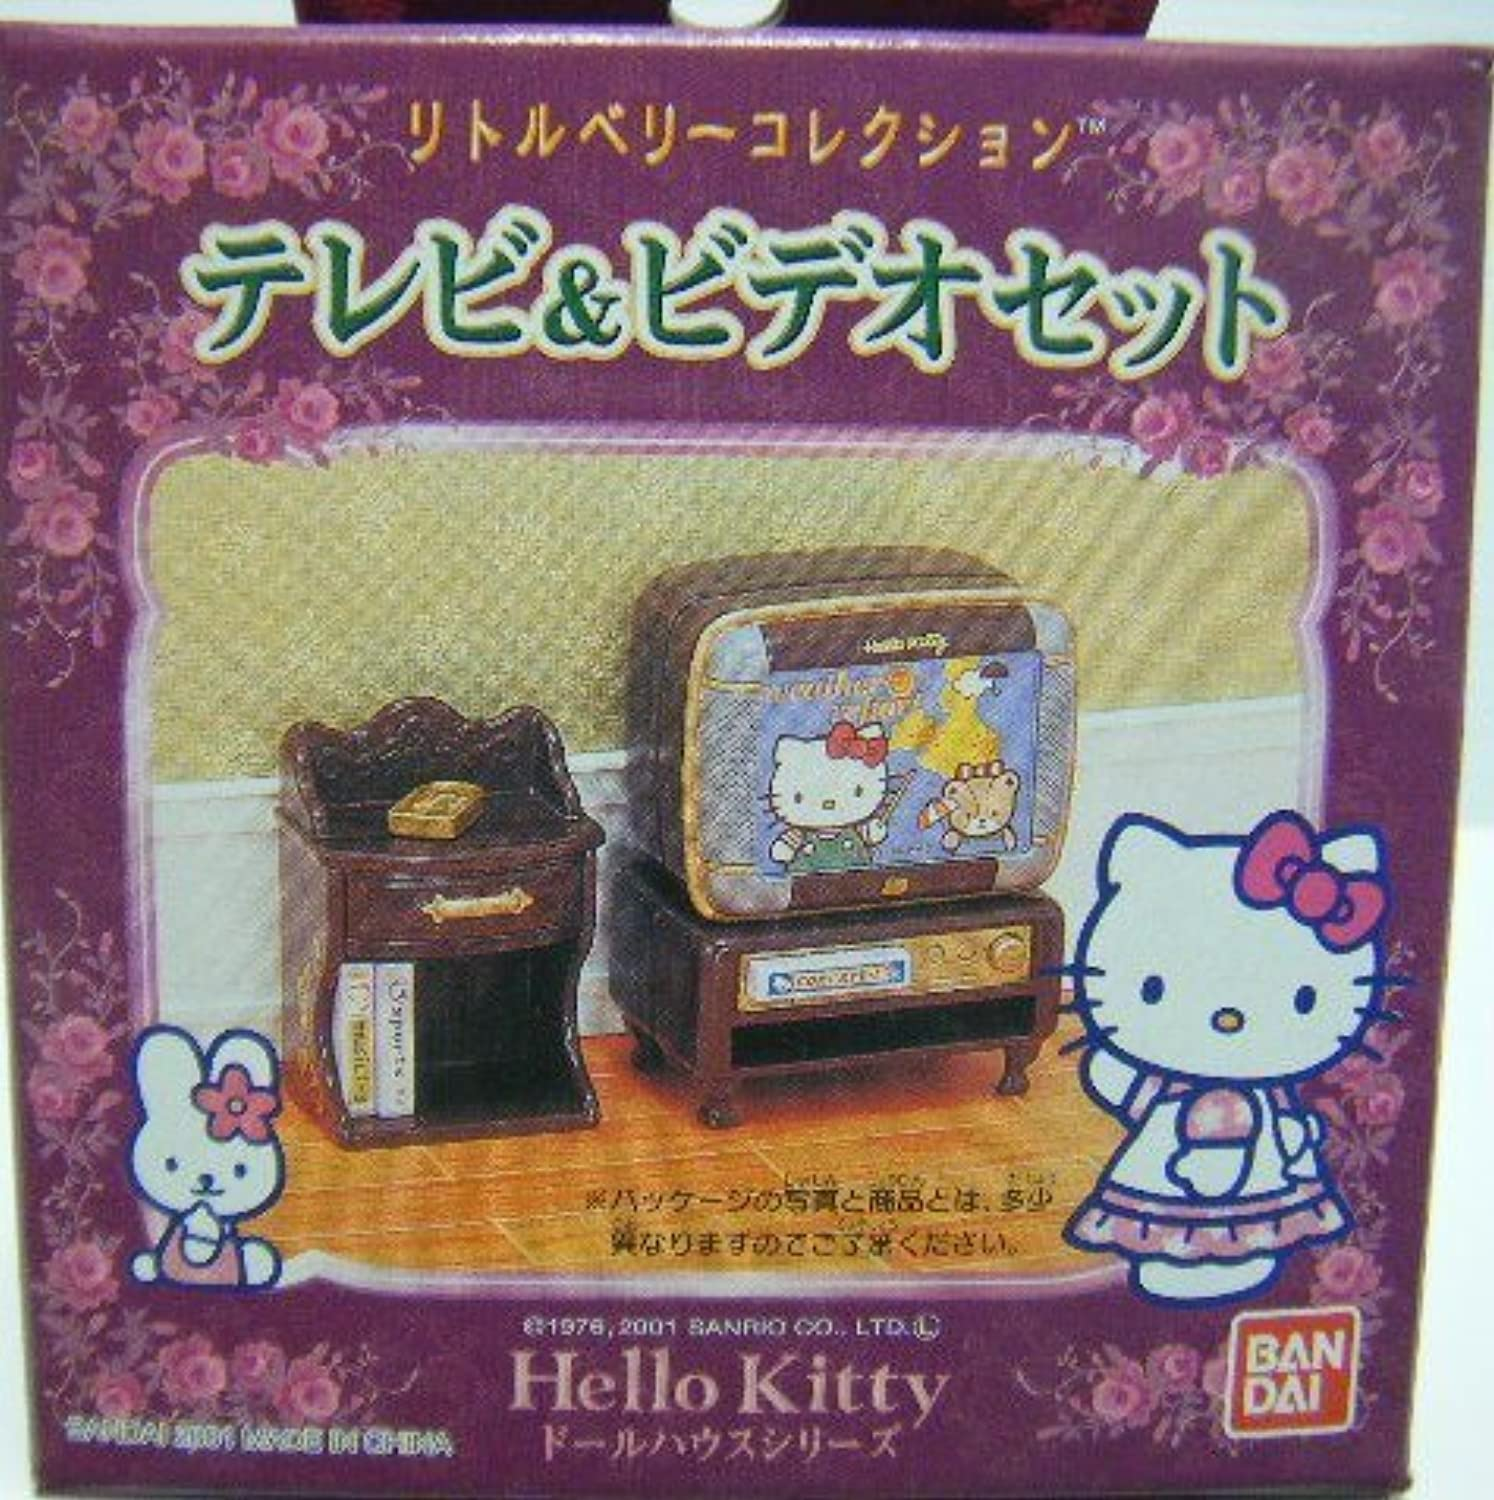 Hello Kitty Little Berry collection TV & video set